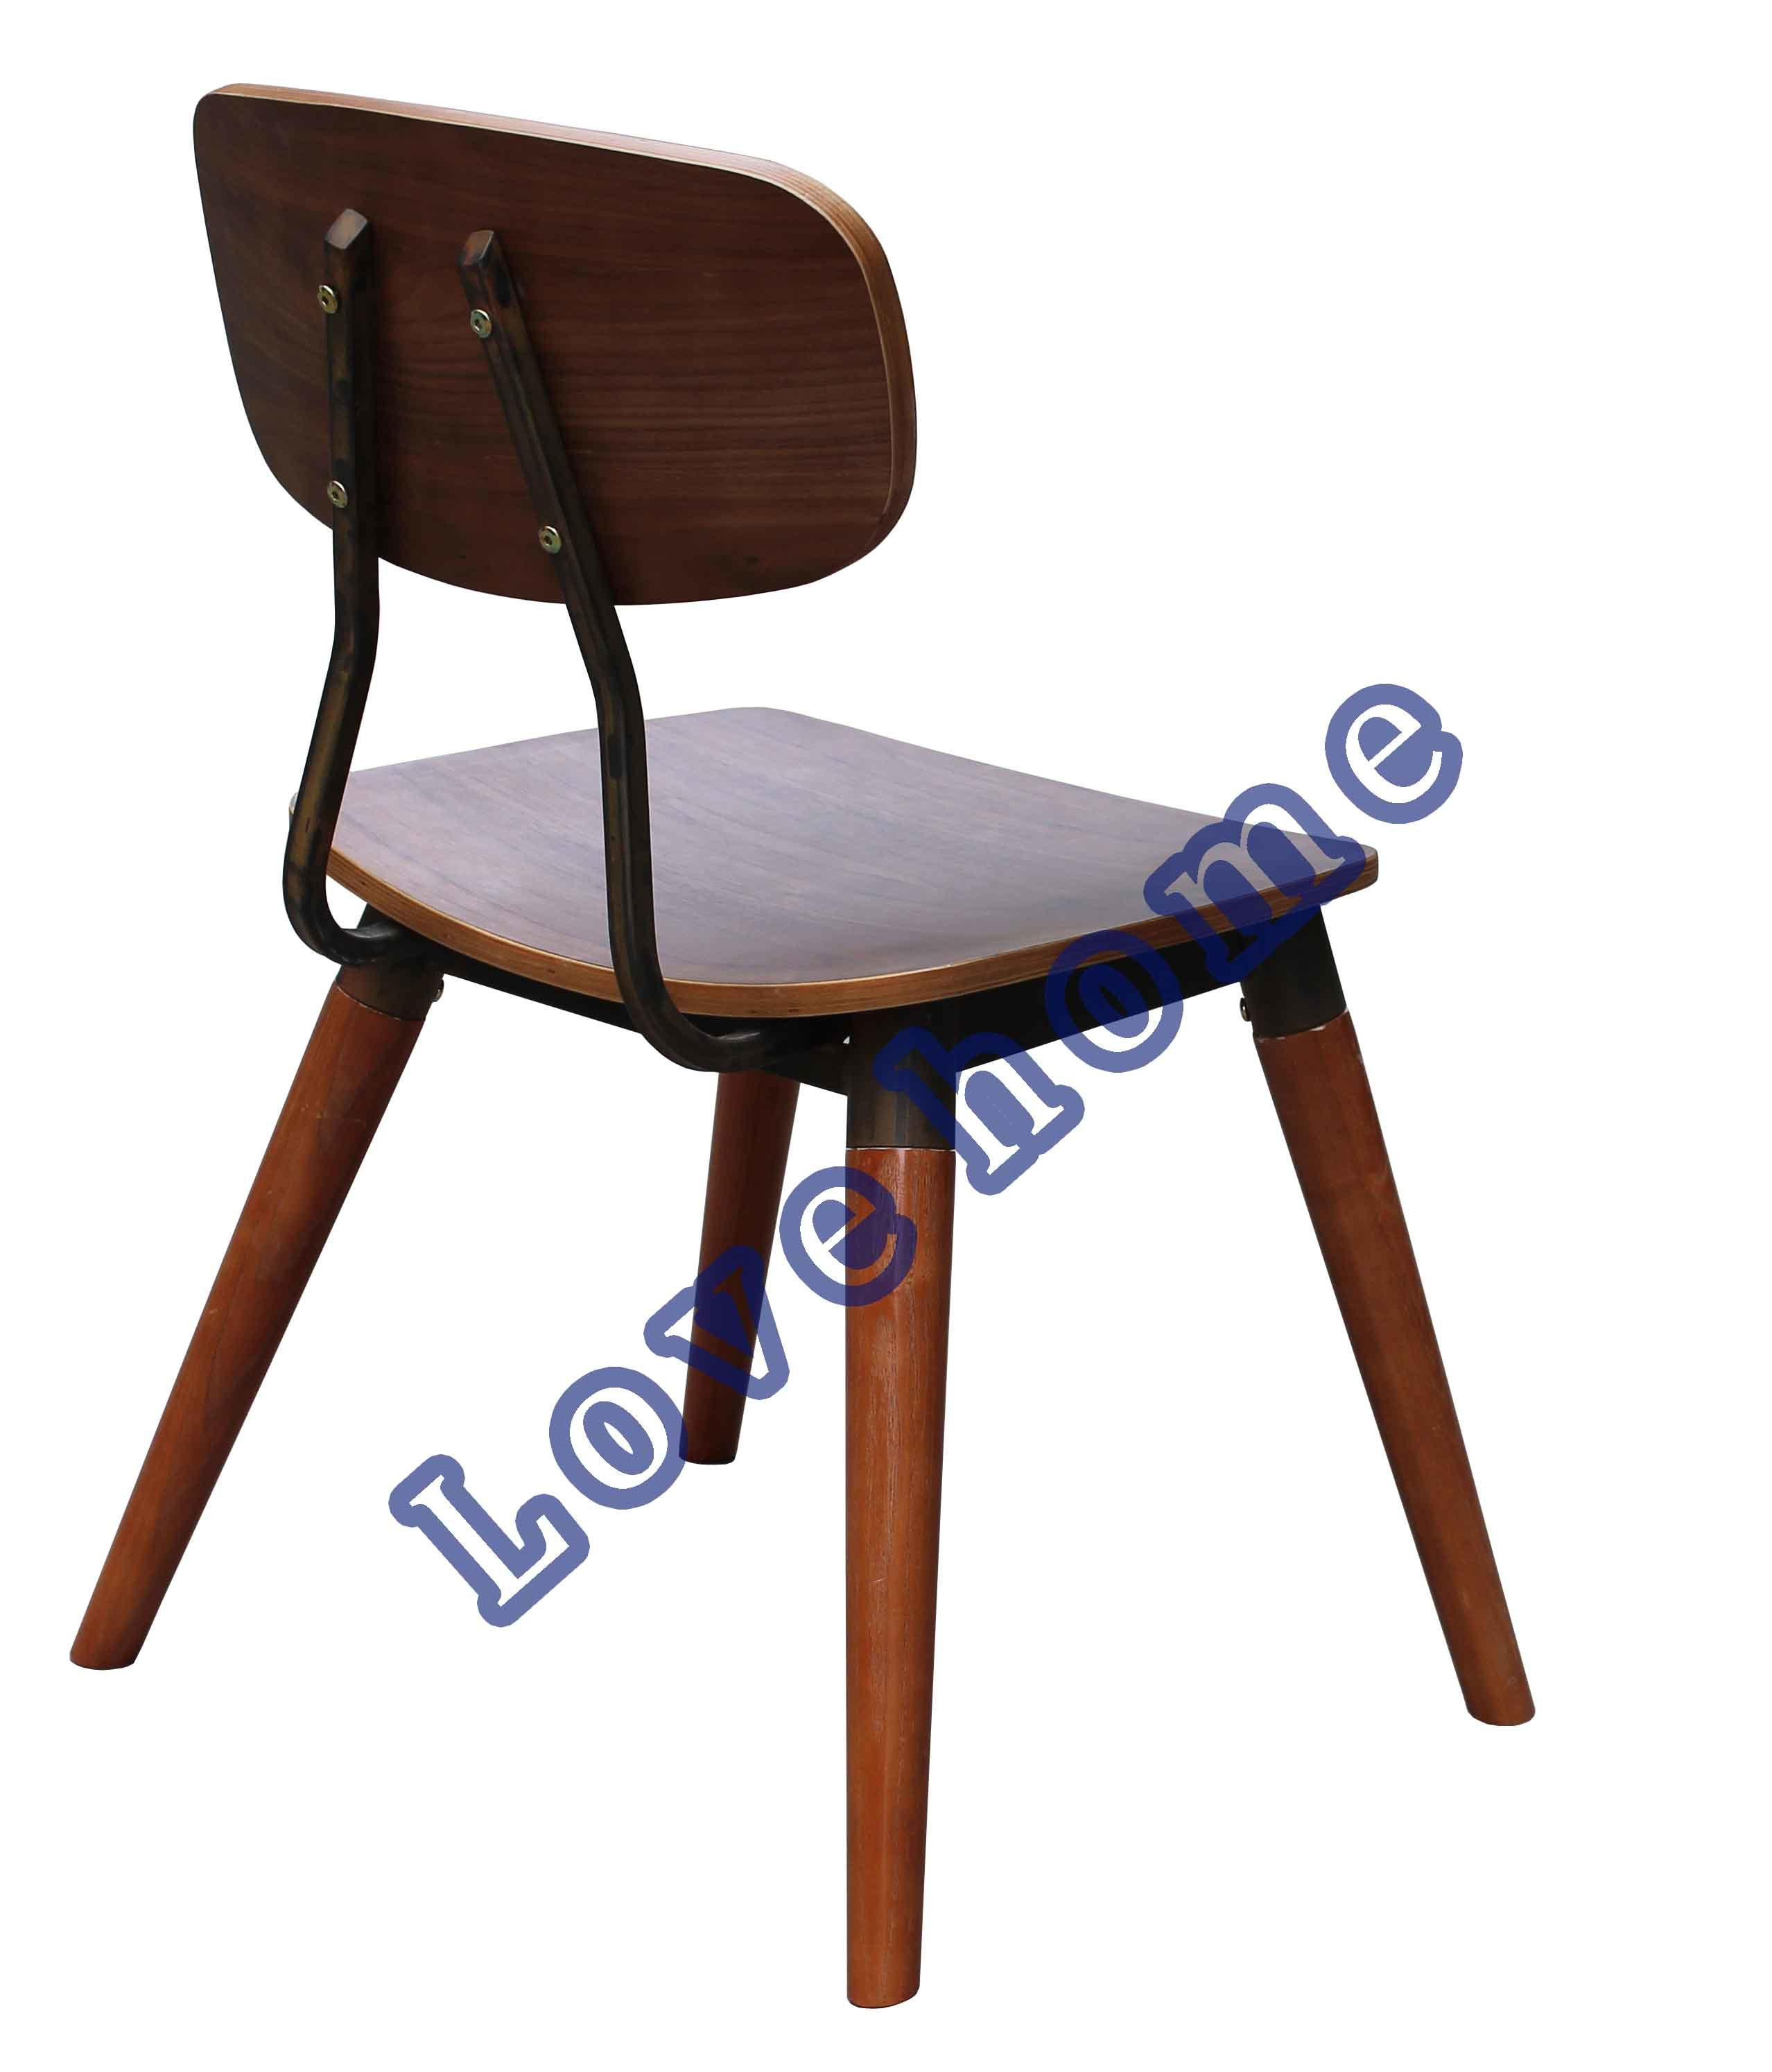 Classic Dining Restaurant Furniture Walnut Copine Sean Dix Chair